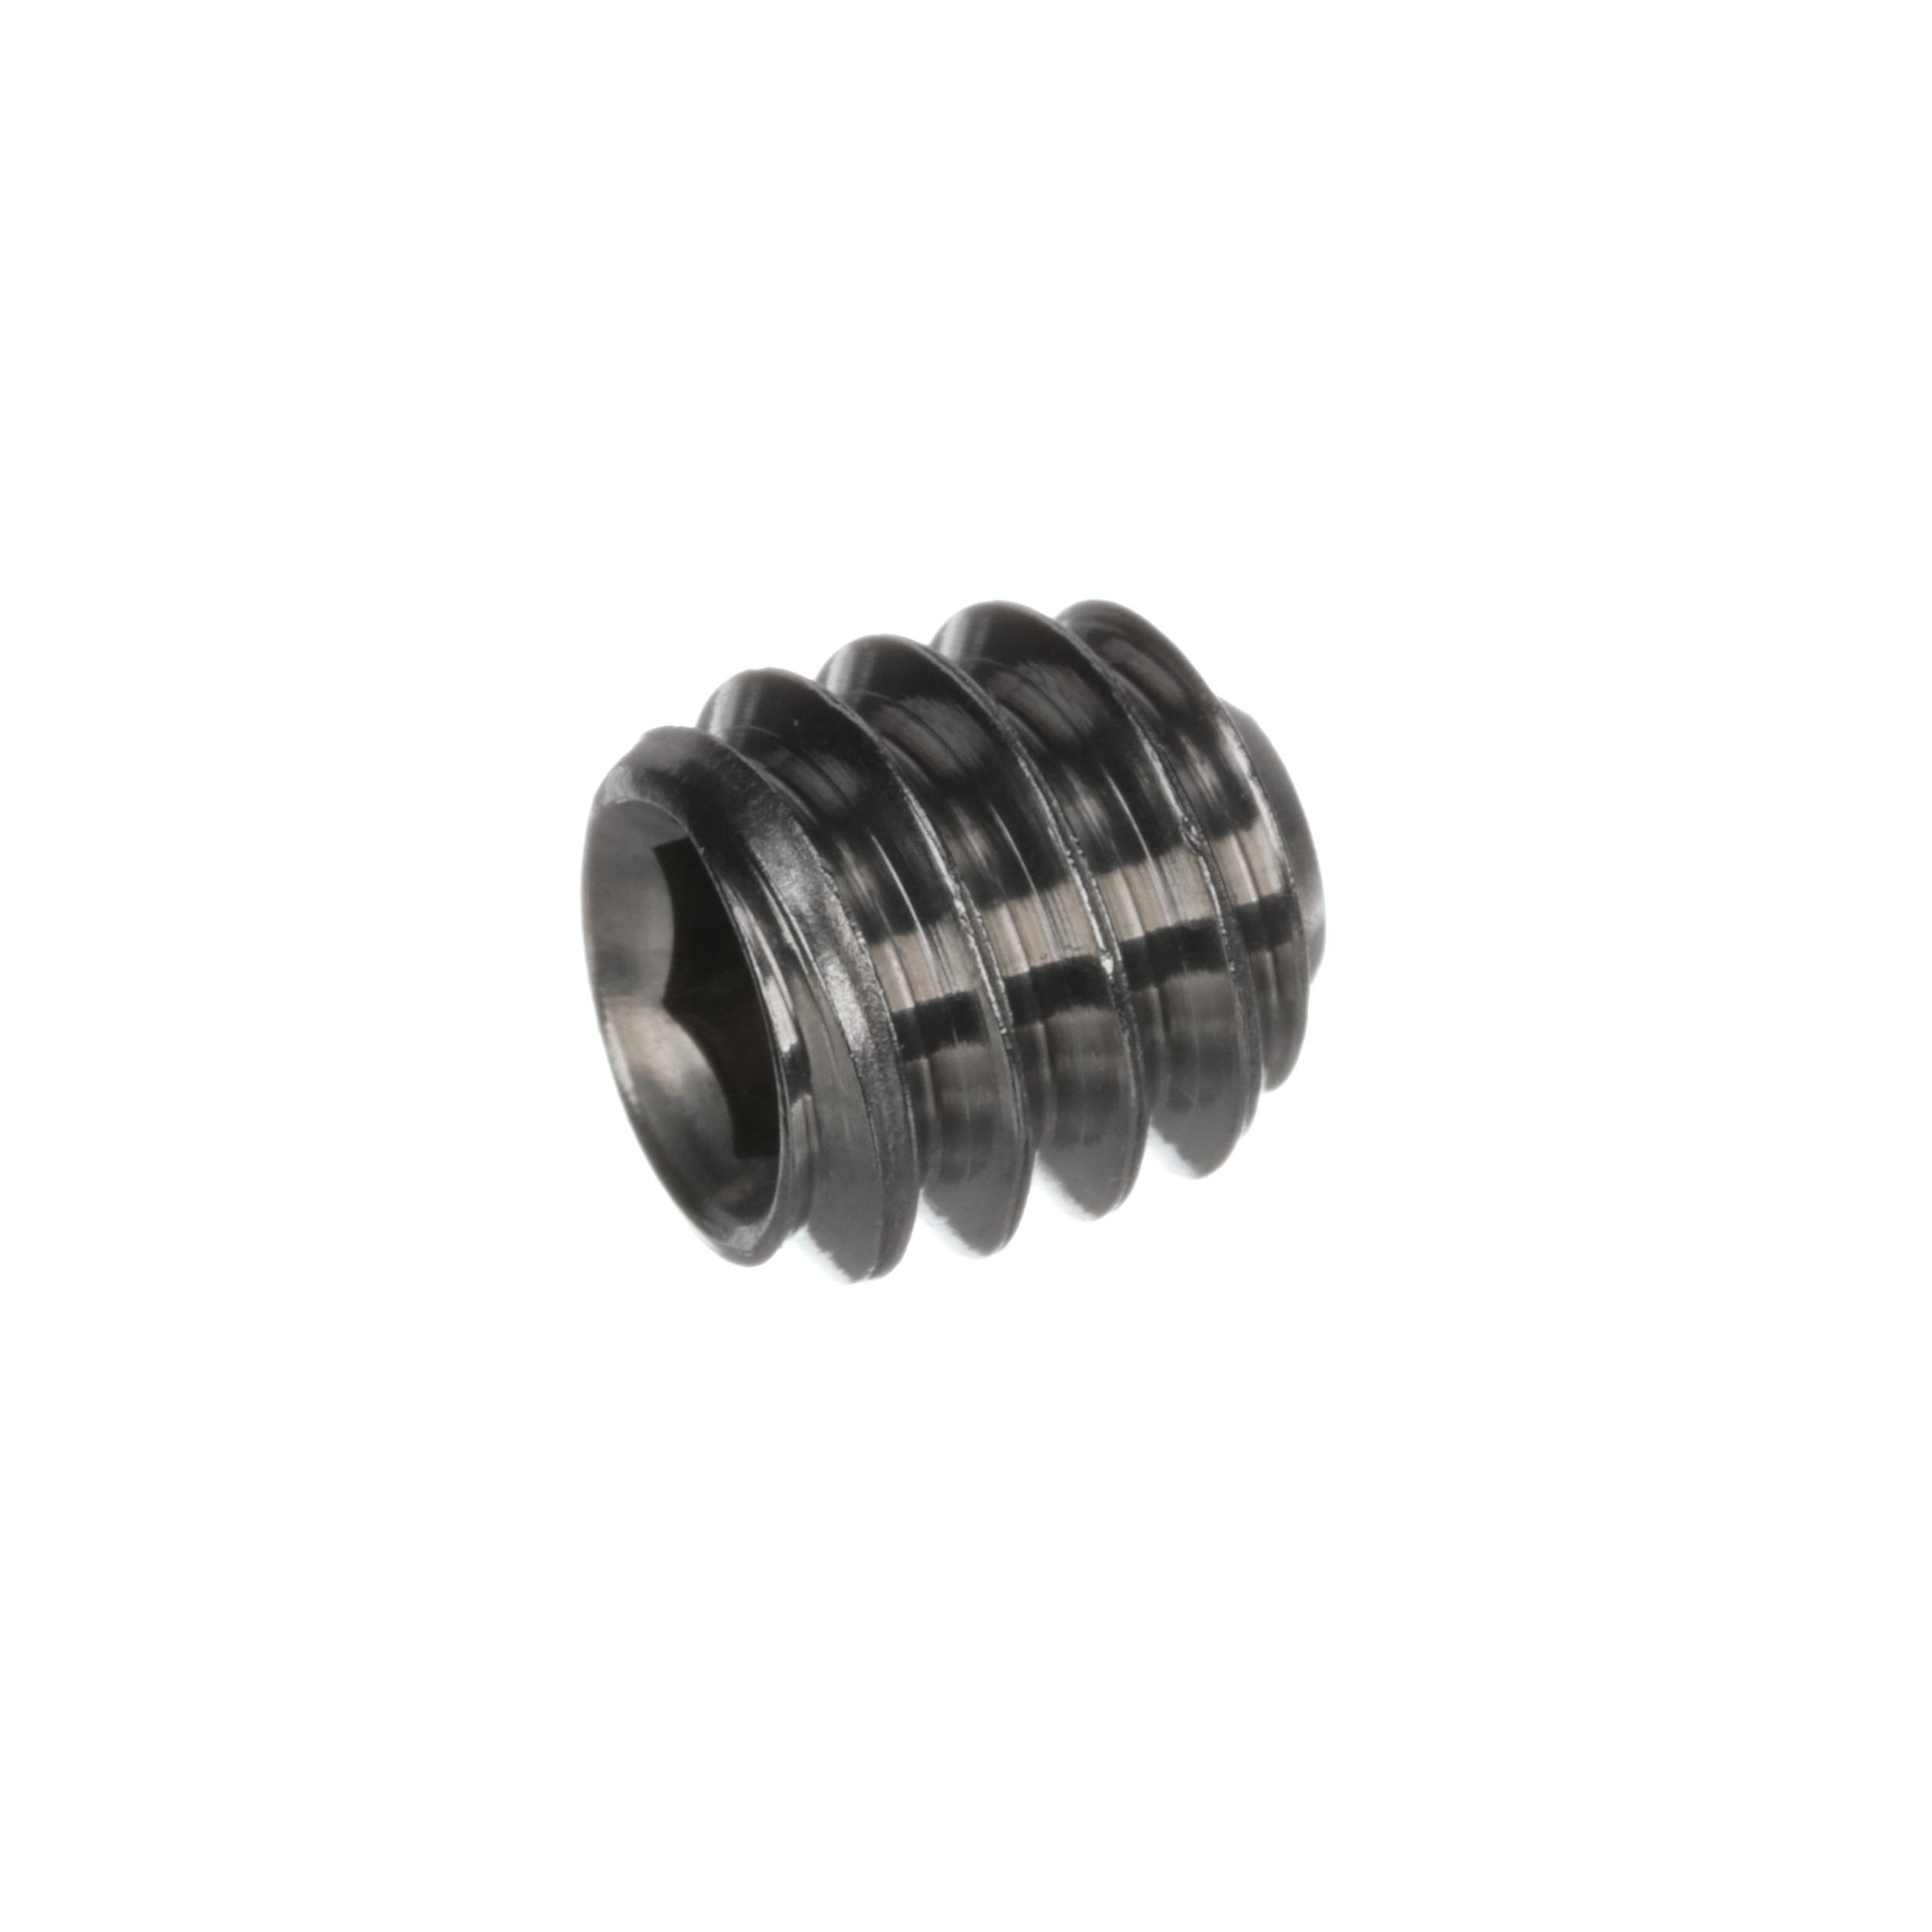 HOBART SCREW, SET, 1/4-20 X 1/4